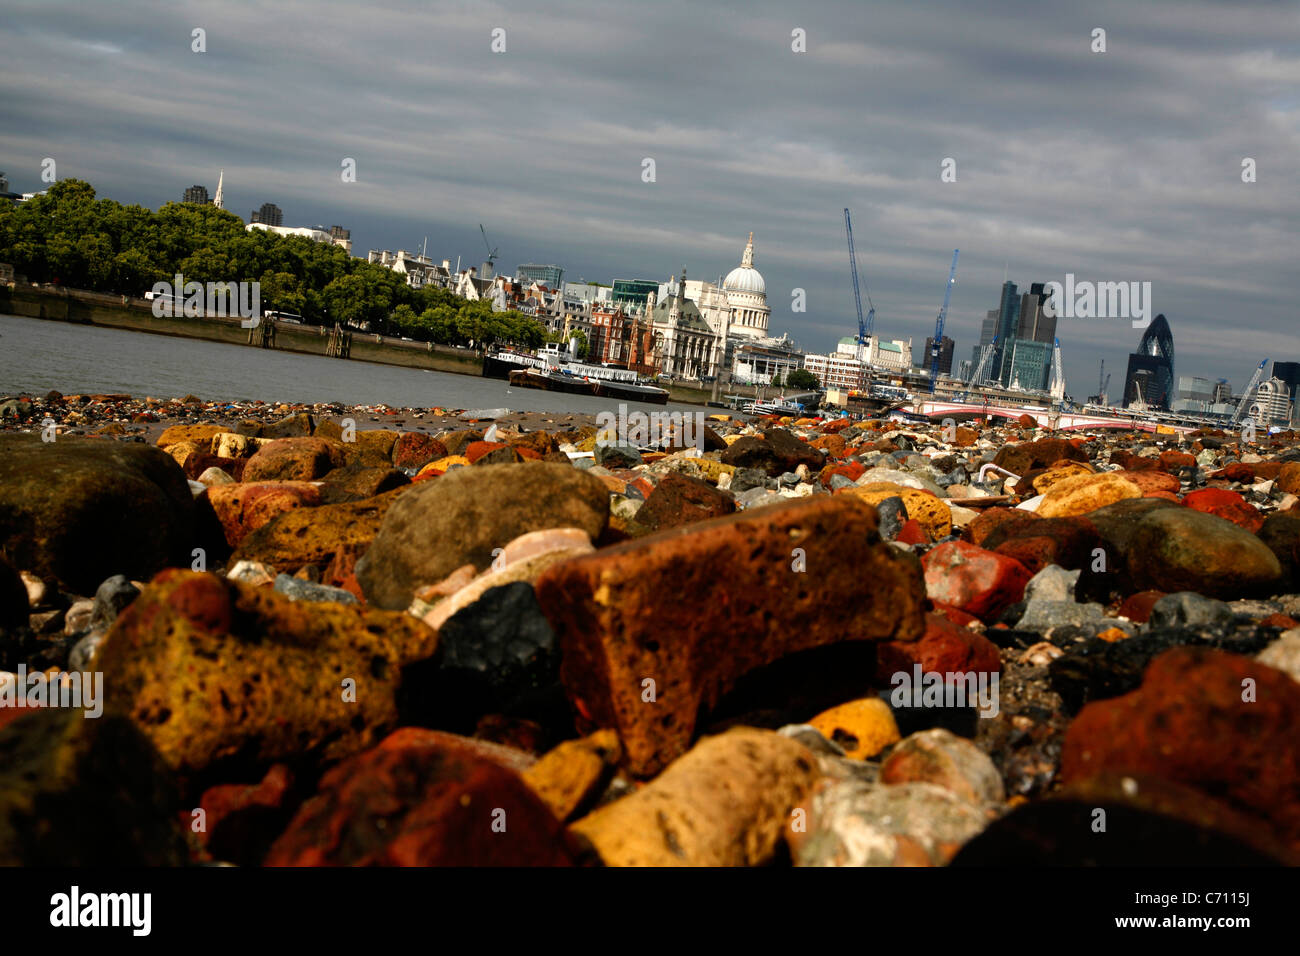 View from the foreshore of the River Thames at South Bank looking towards St Paul's Cathedral and City of London, - Stock Image